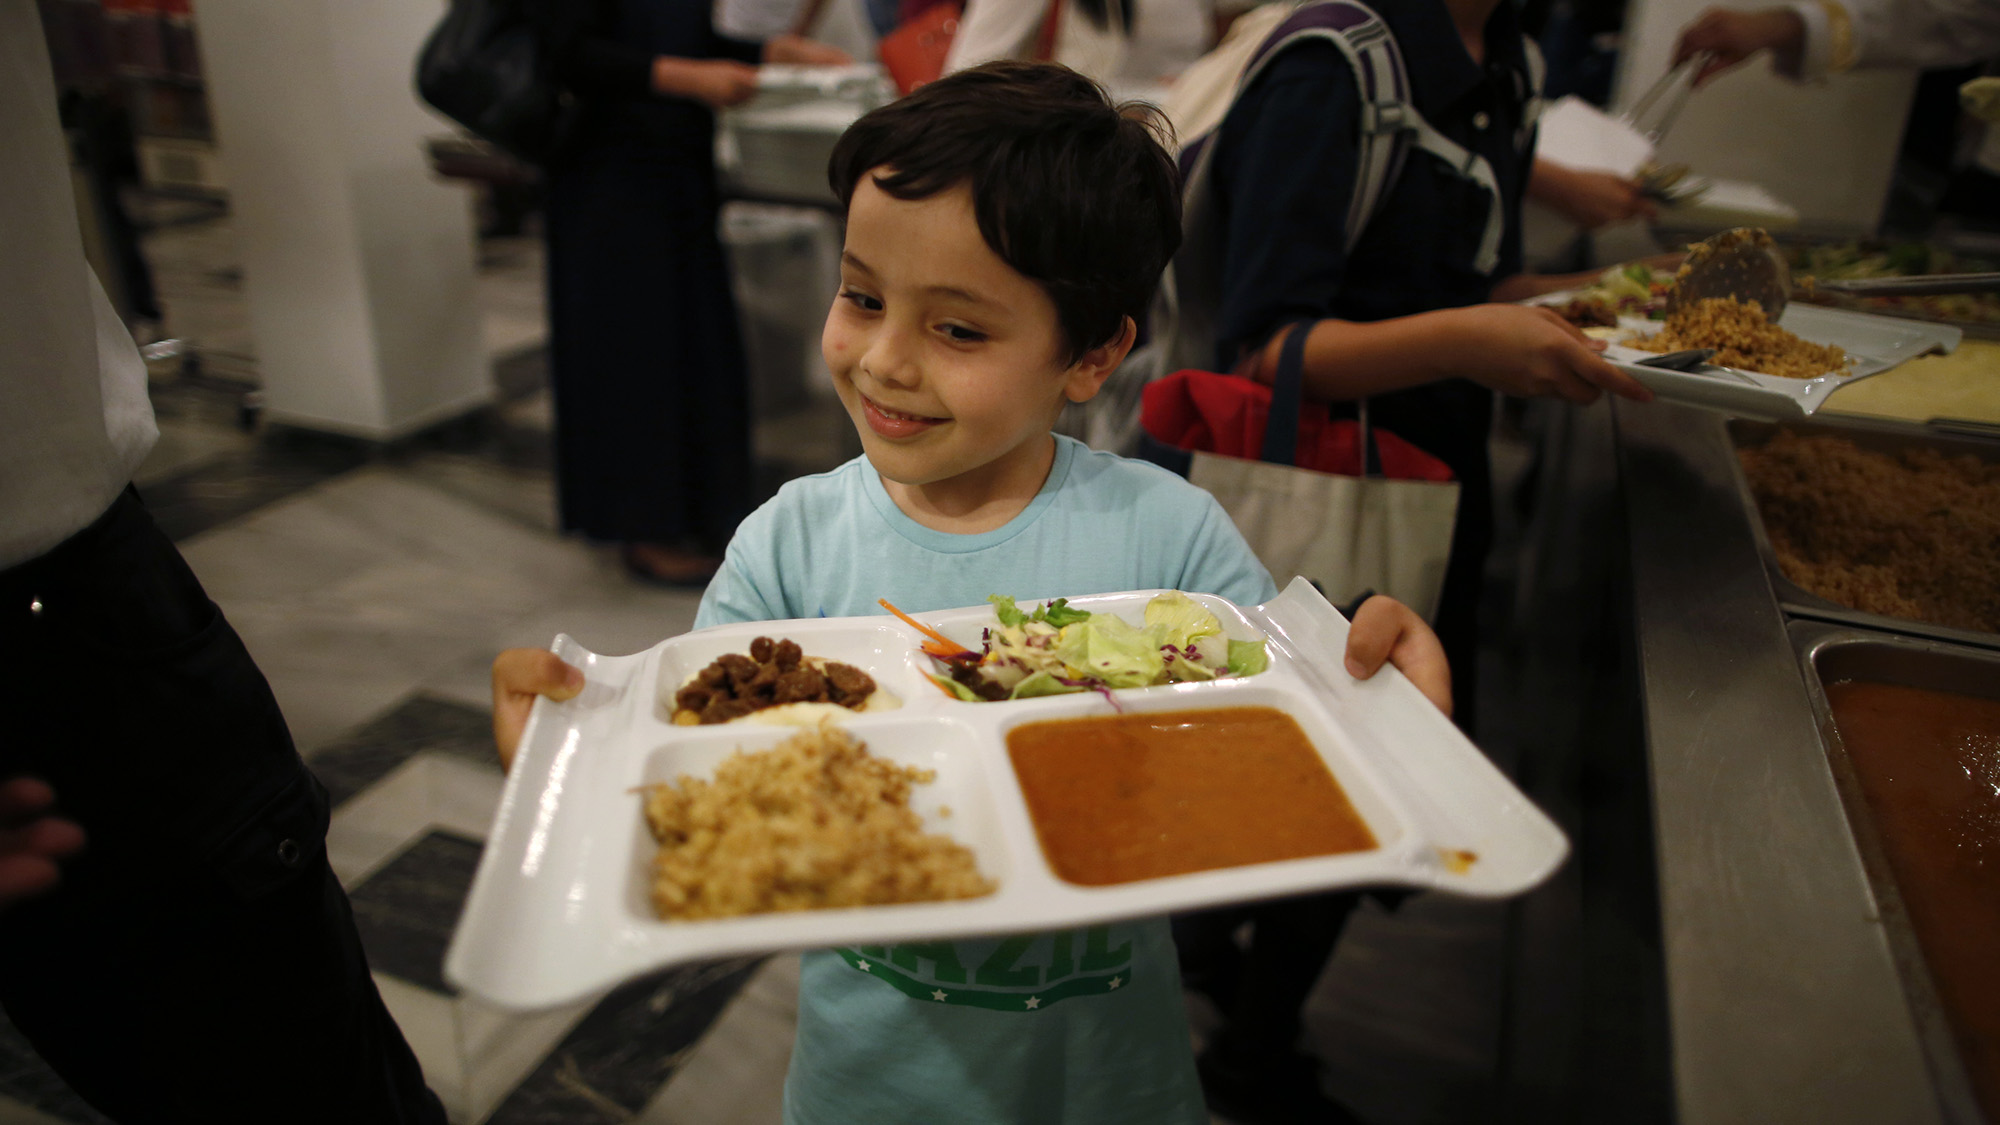 A Muslim boy residing in Japan has his iftar, breaking of fast meal, during the holy month of Ramadan at Tokyo Camii mosque in Tokyo June 29, 2014. REUTERS/Issei Kato (JAPAN - Tags: RELIGION FOOD) - RTR3WAF5